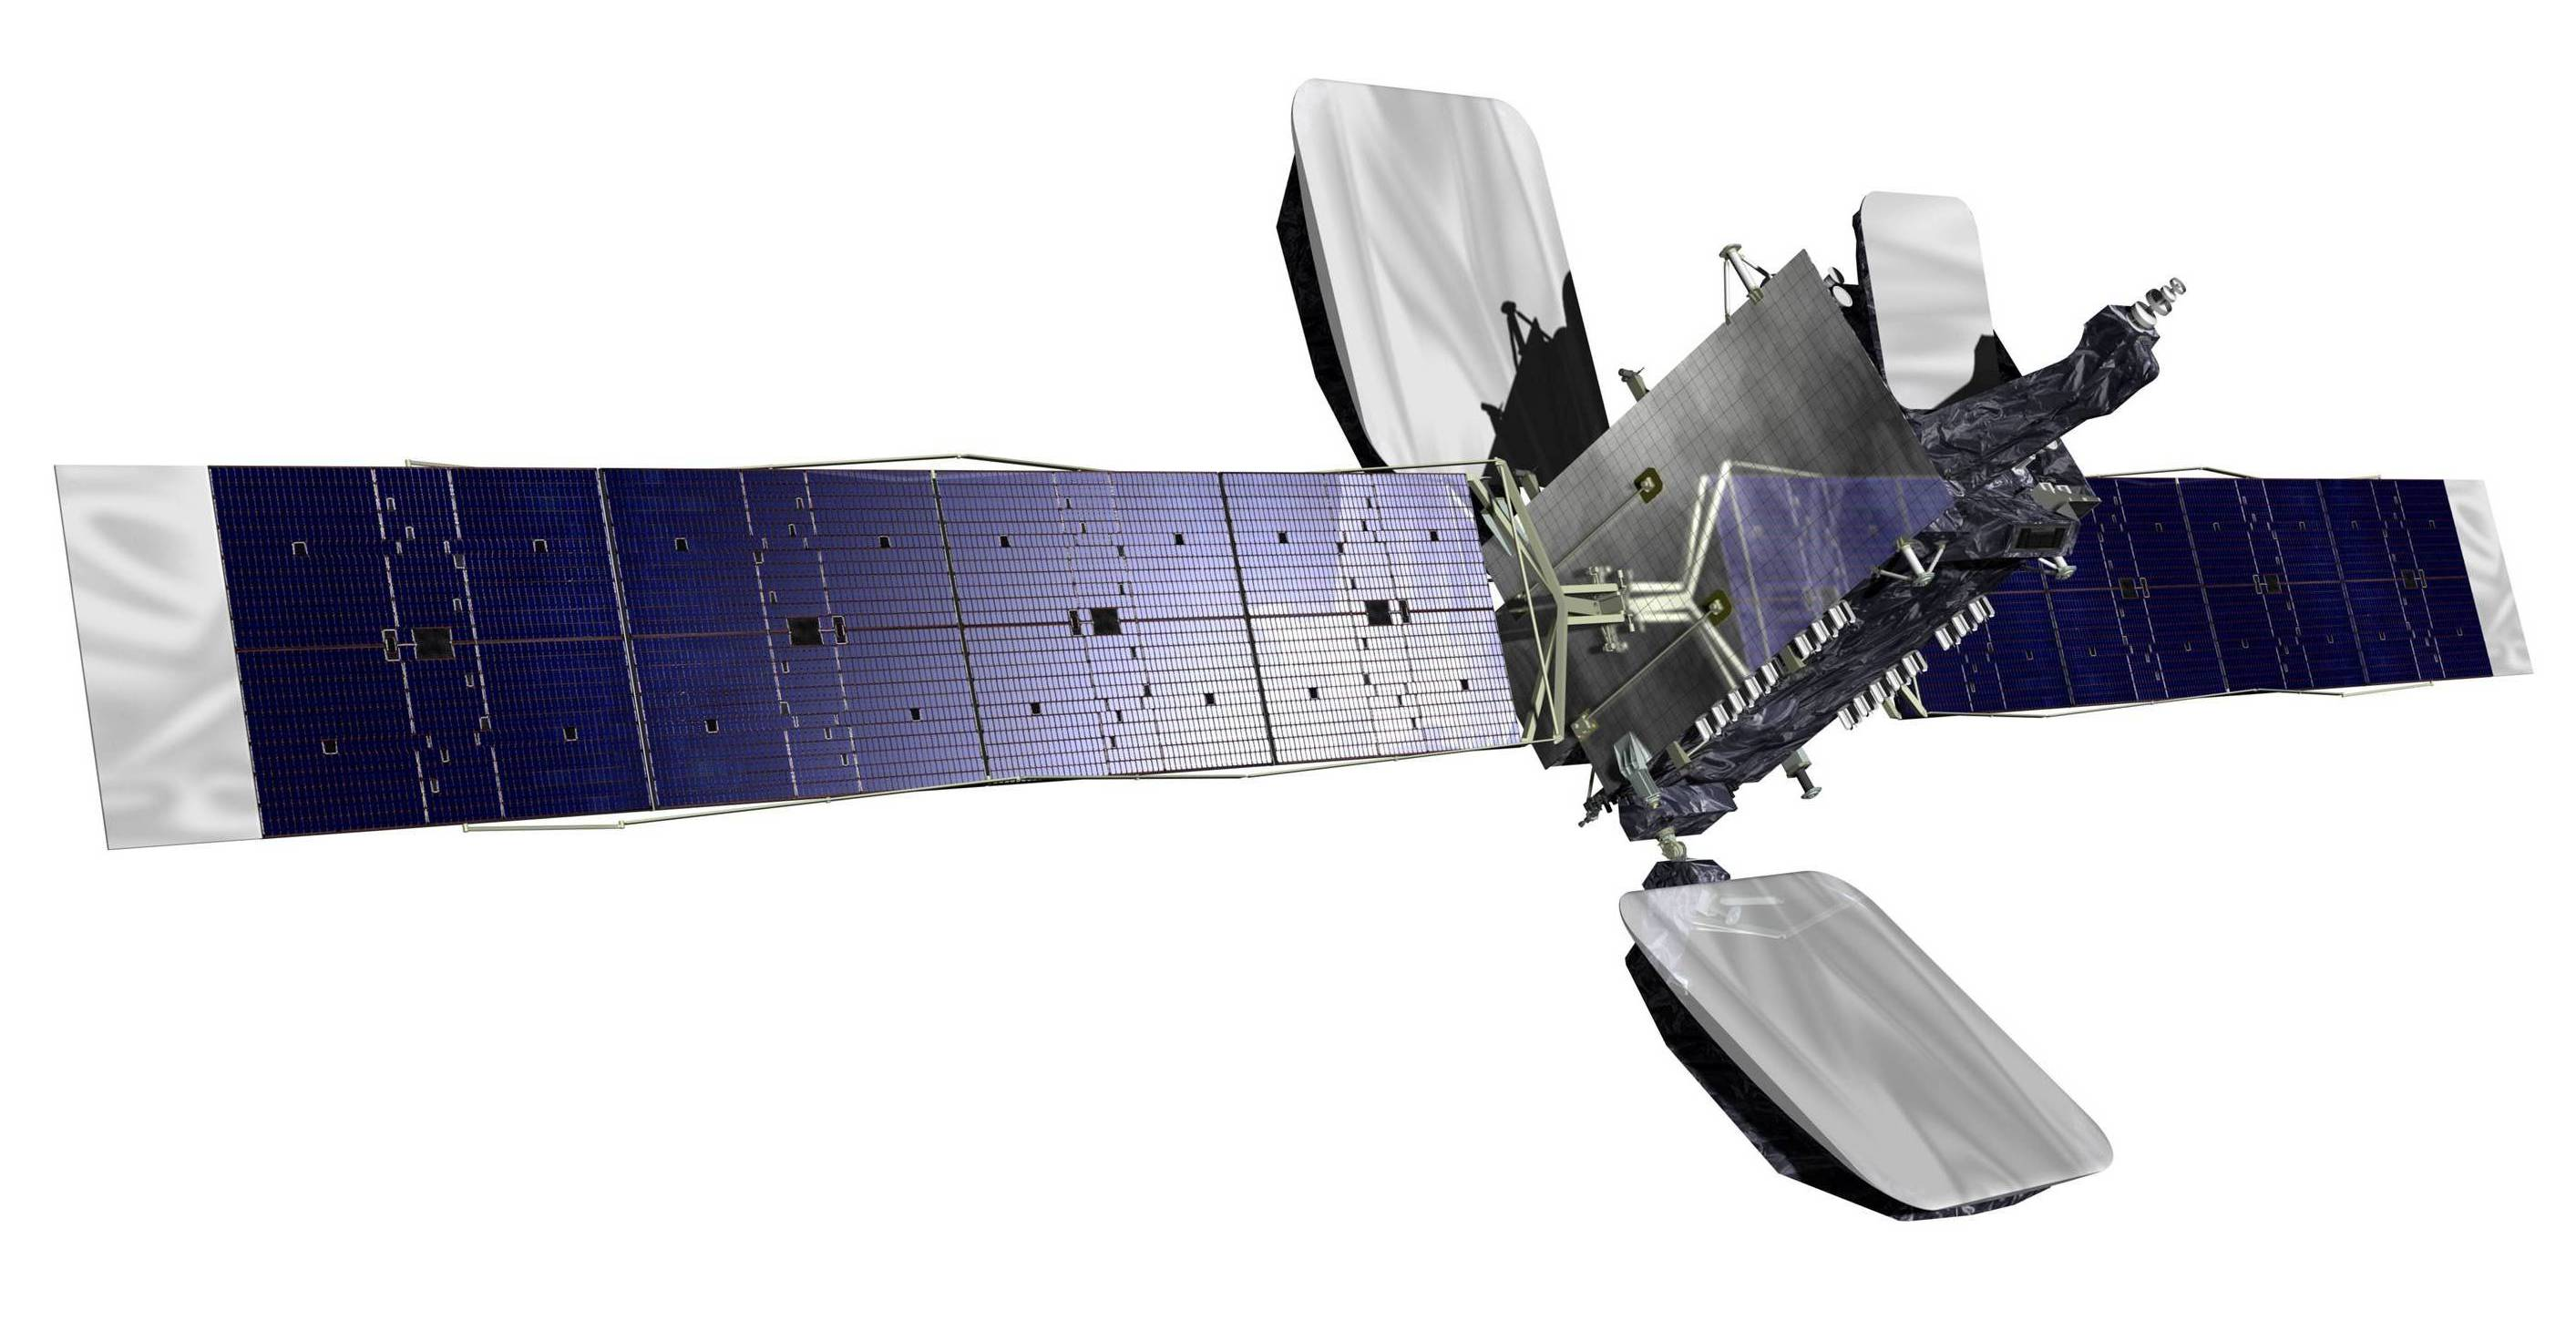 MEASAT-1 satellite. Image courtesy of MEASAT Satellite Systems.